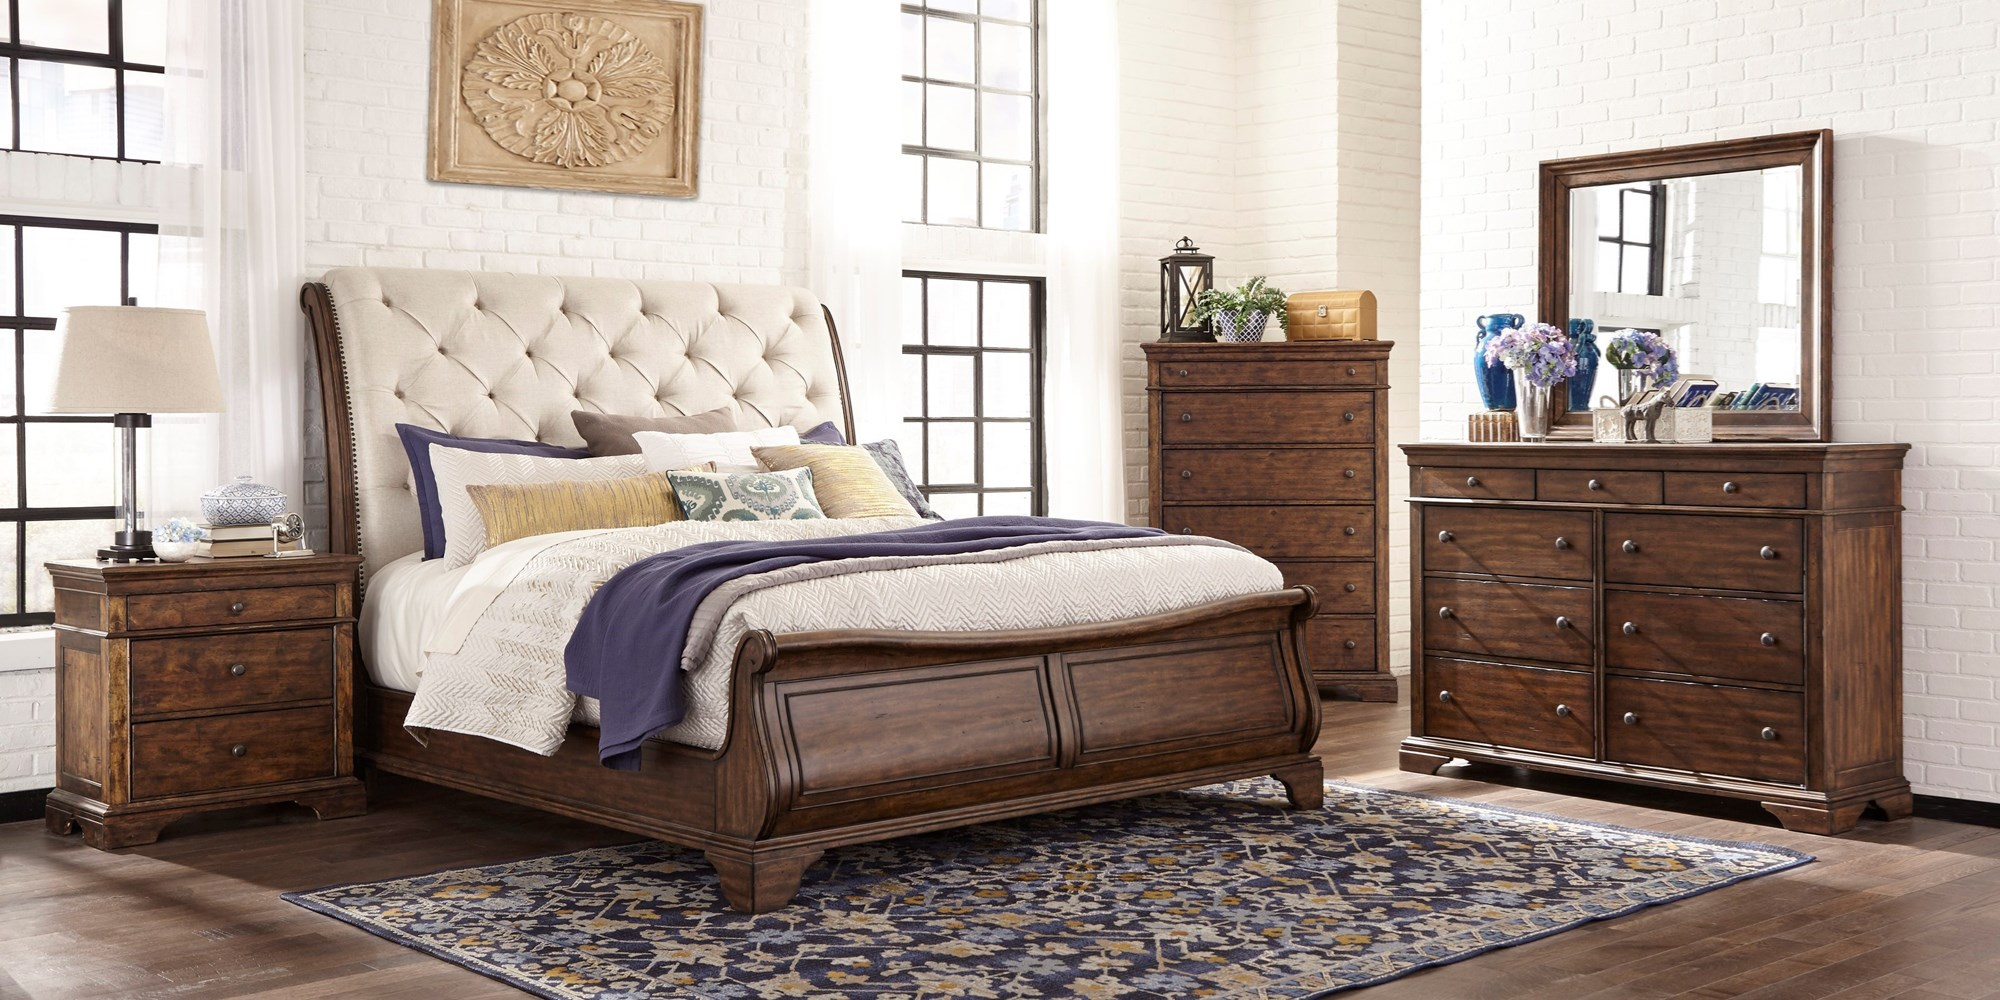 Sleigh Bed with Tufted Headboard